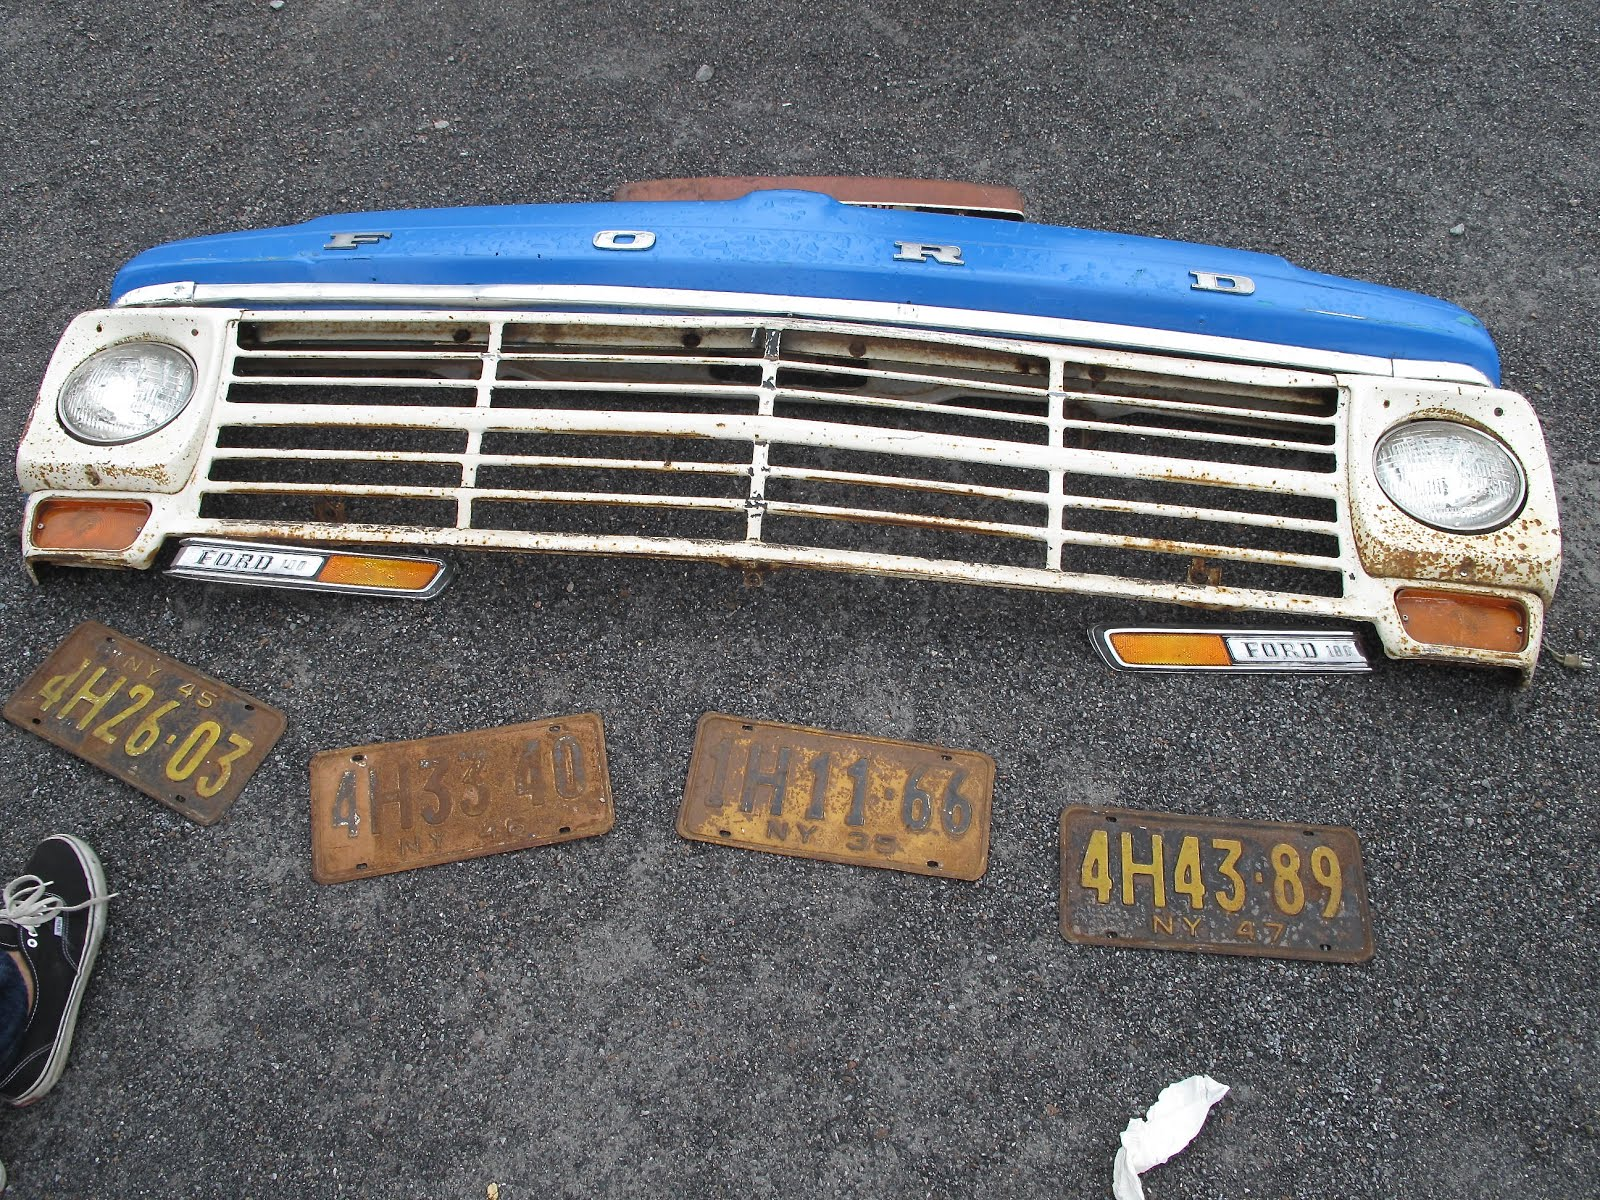 Brooklyn Flea Market features grille and front end of Ford F-150.